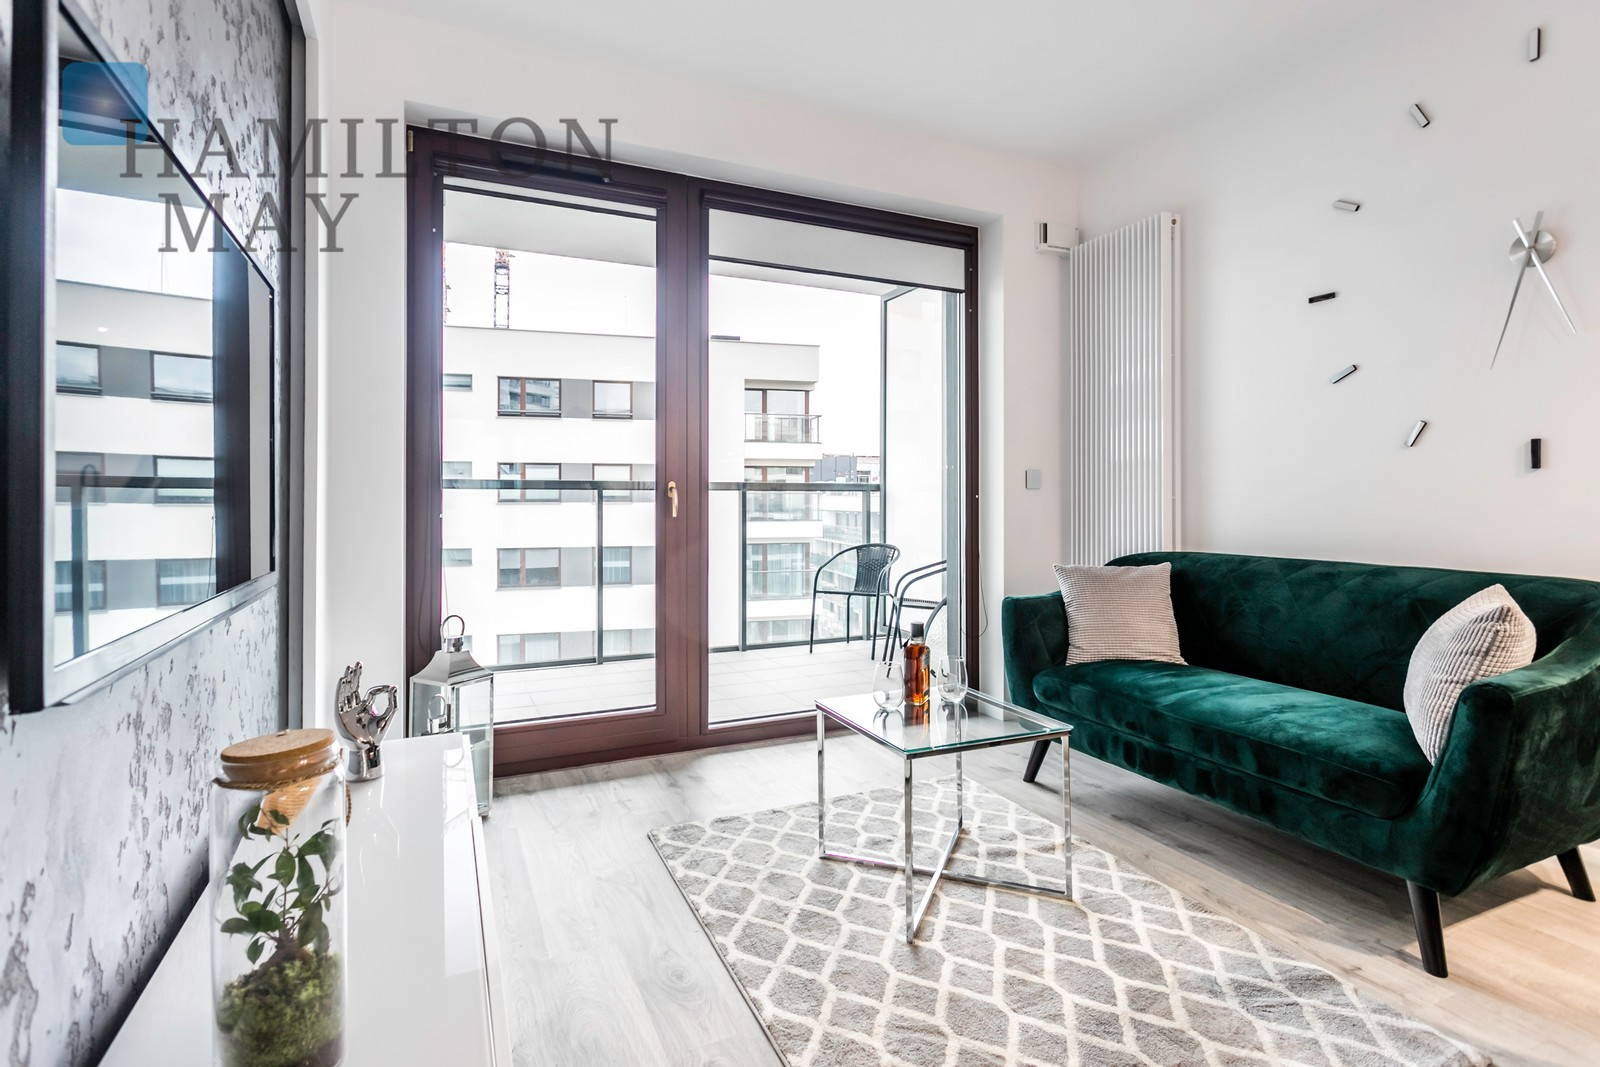 A modern one-bedroom apartment at Kłopot St. Warsaw for rent